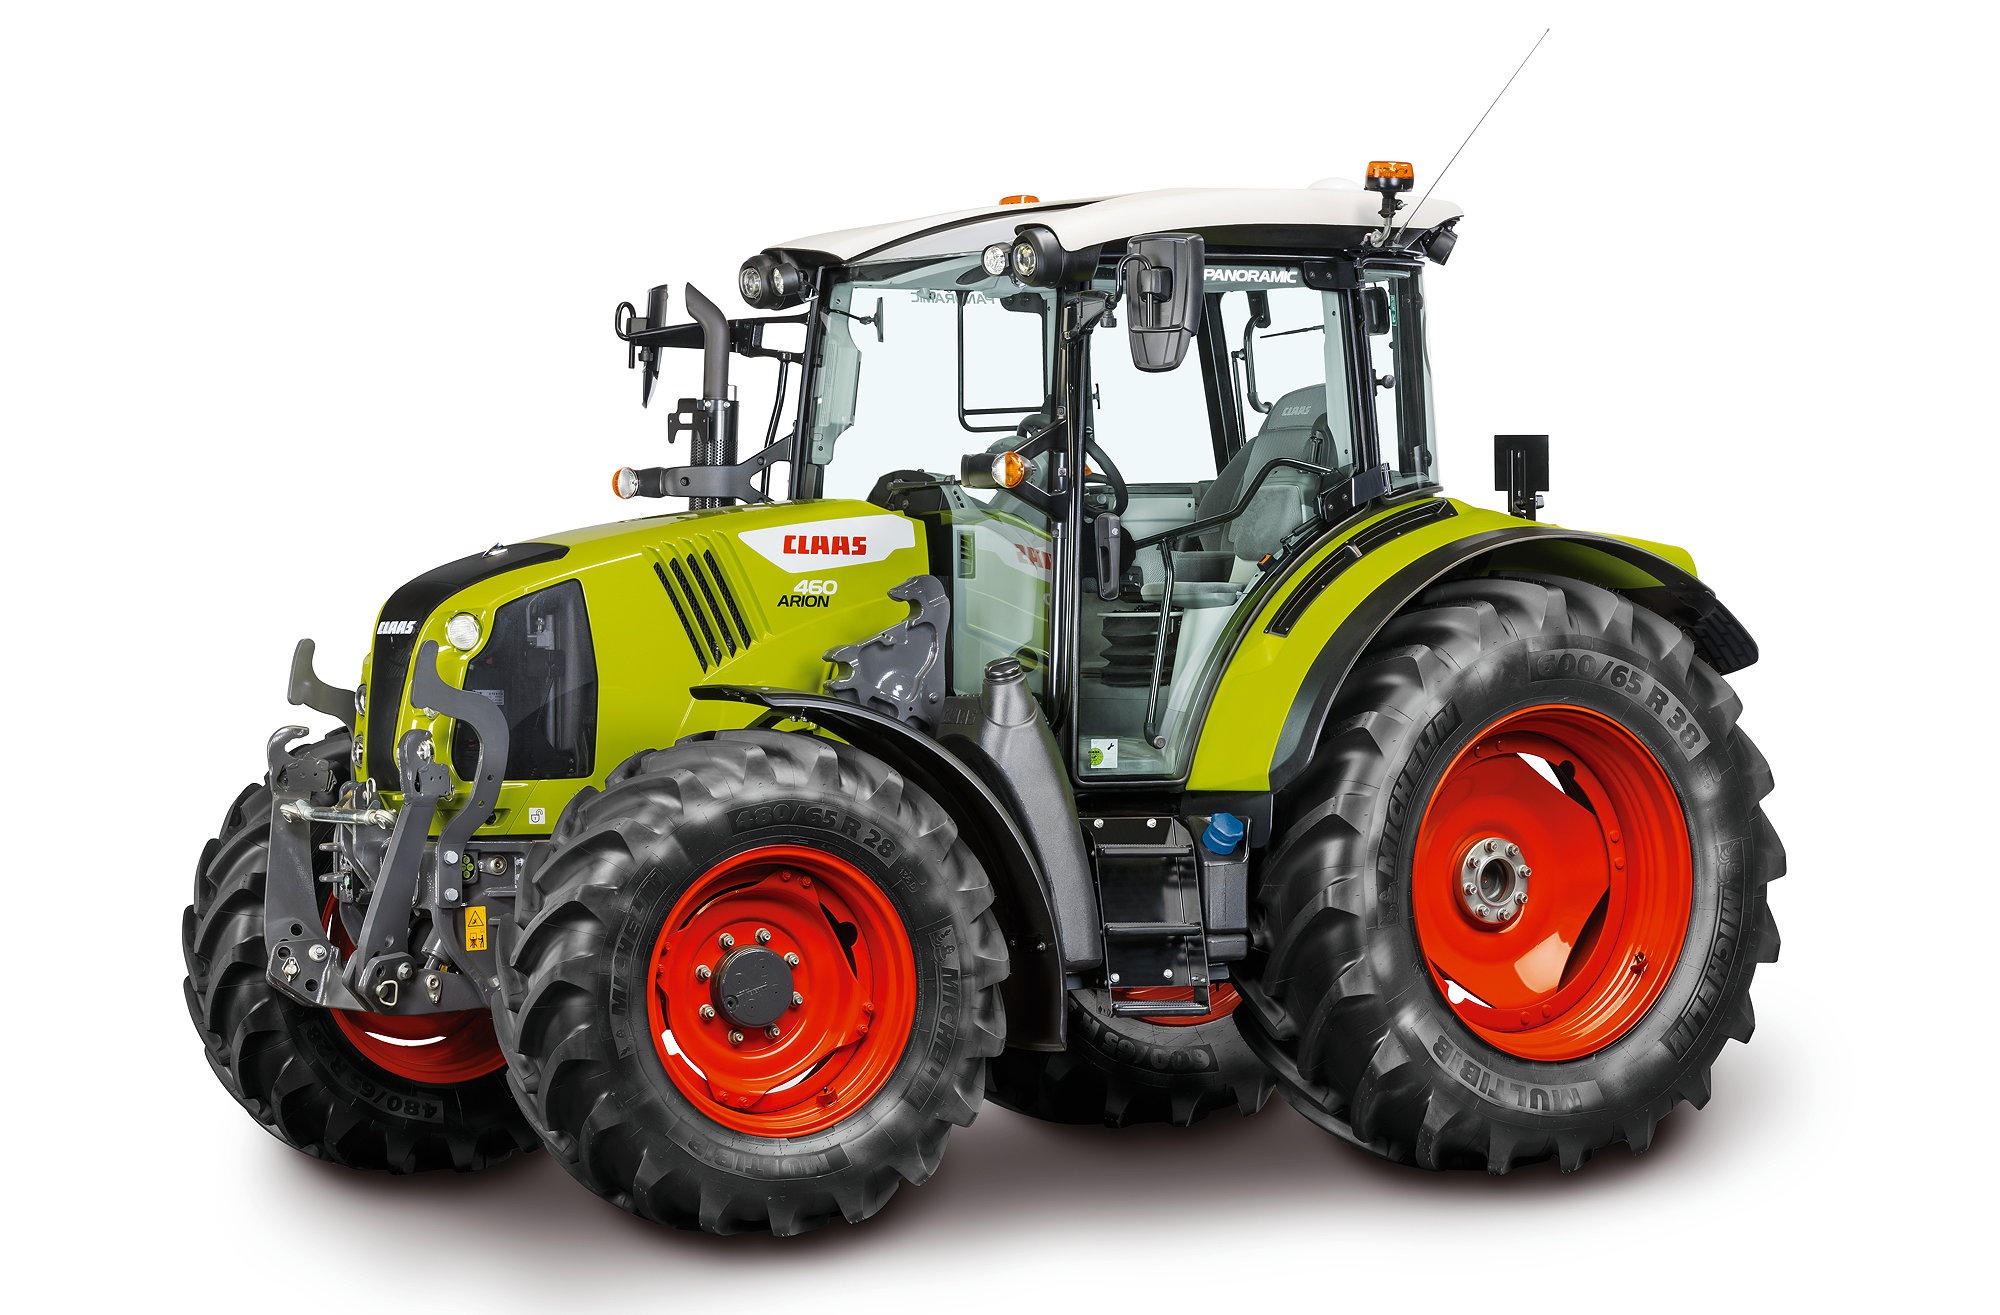 Claas' Arion 400 Series will appear in Stage V emissions format from Autumn 2021.